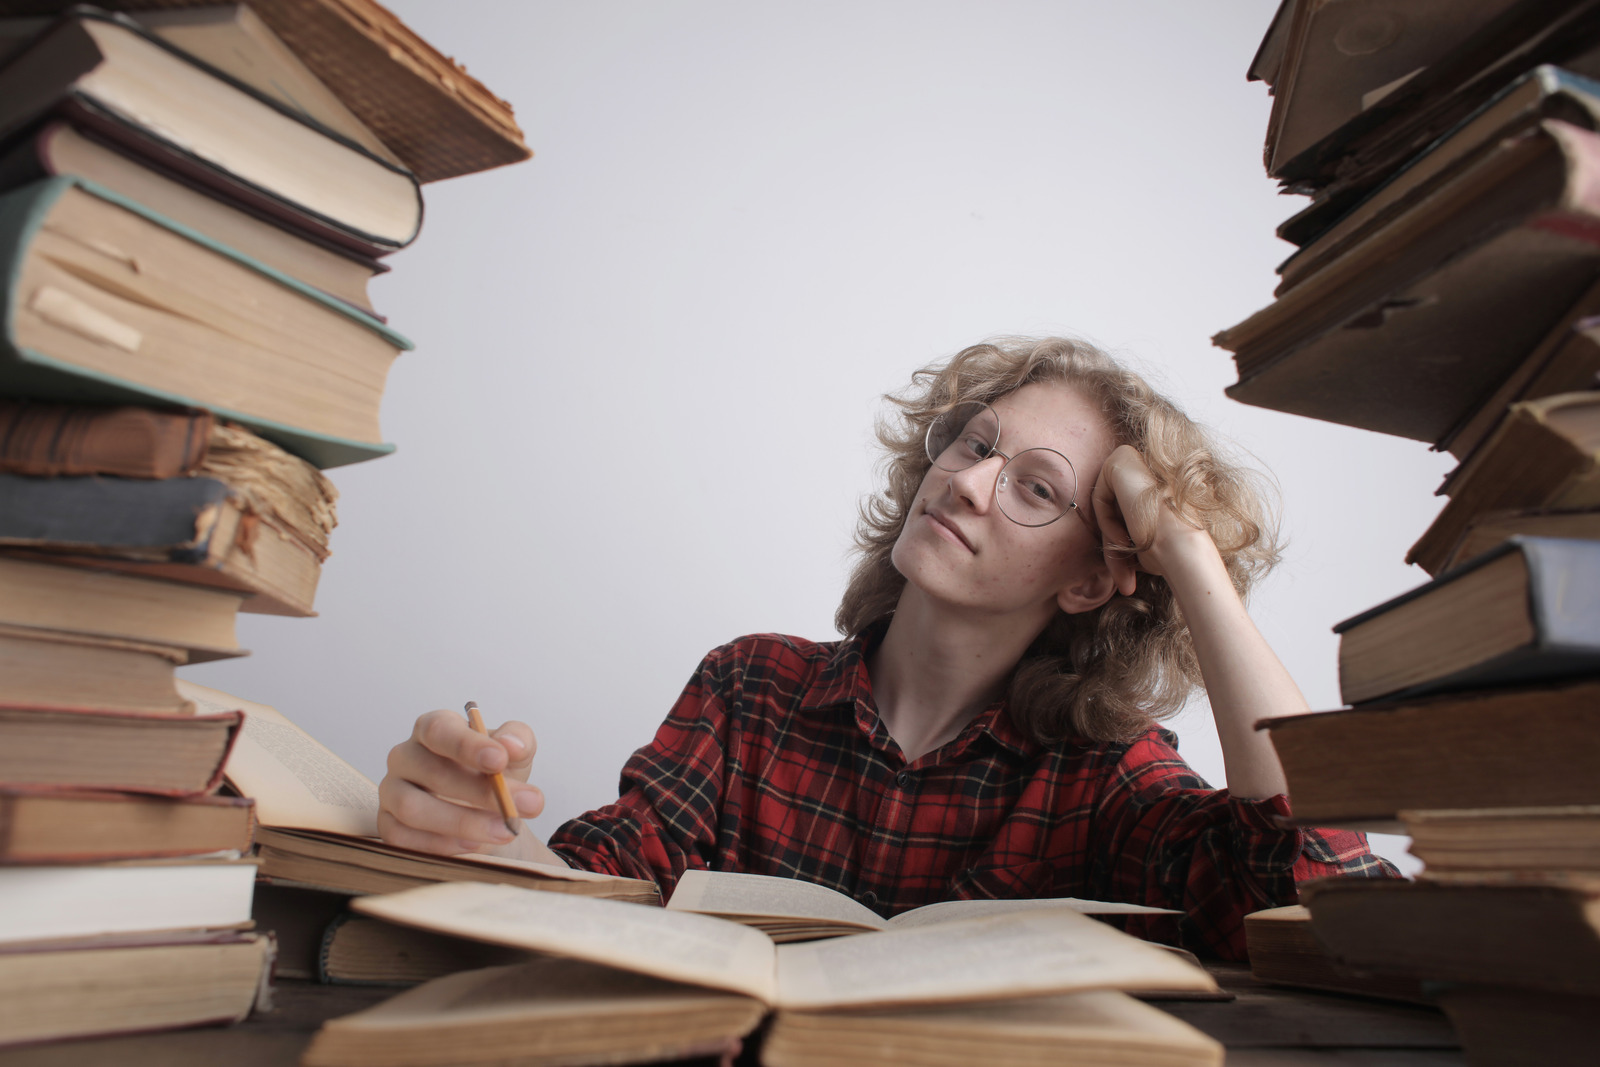 person at desk surrounded by stacks of books